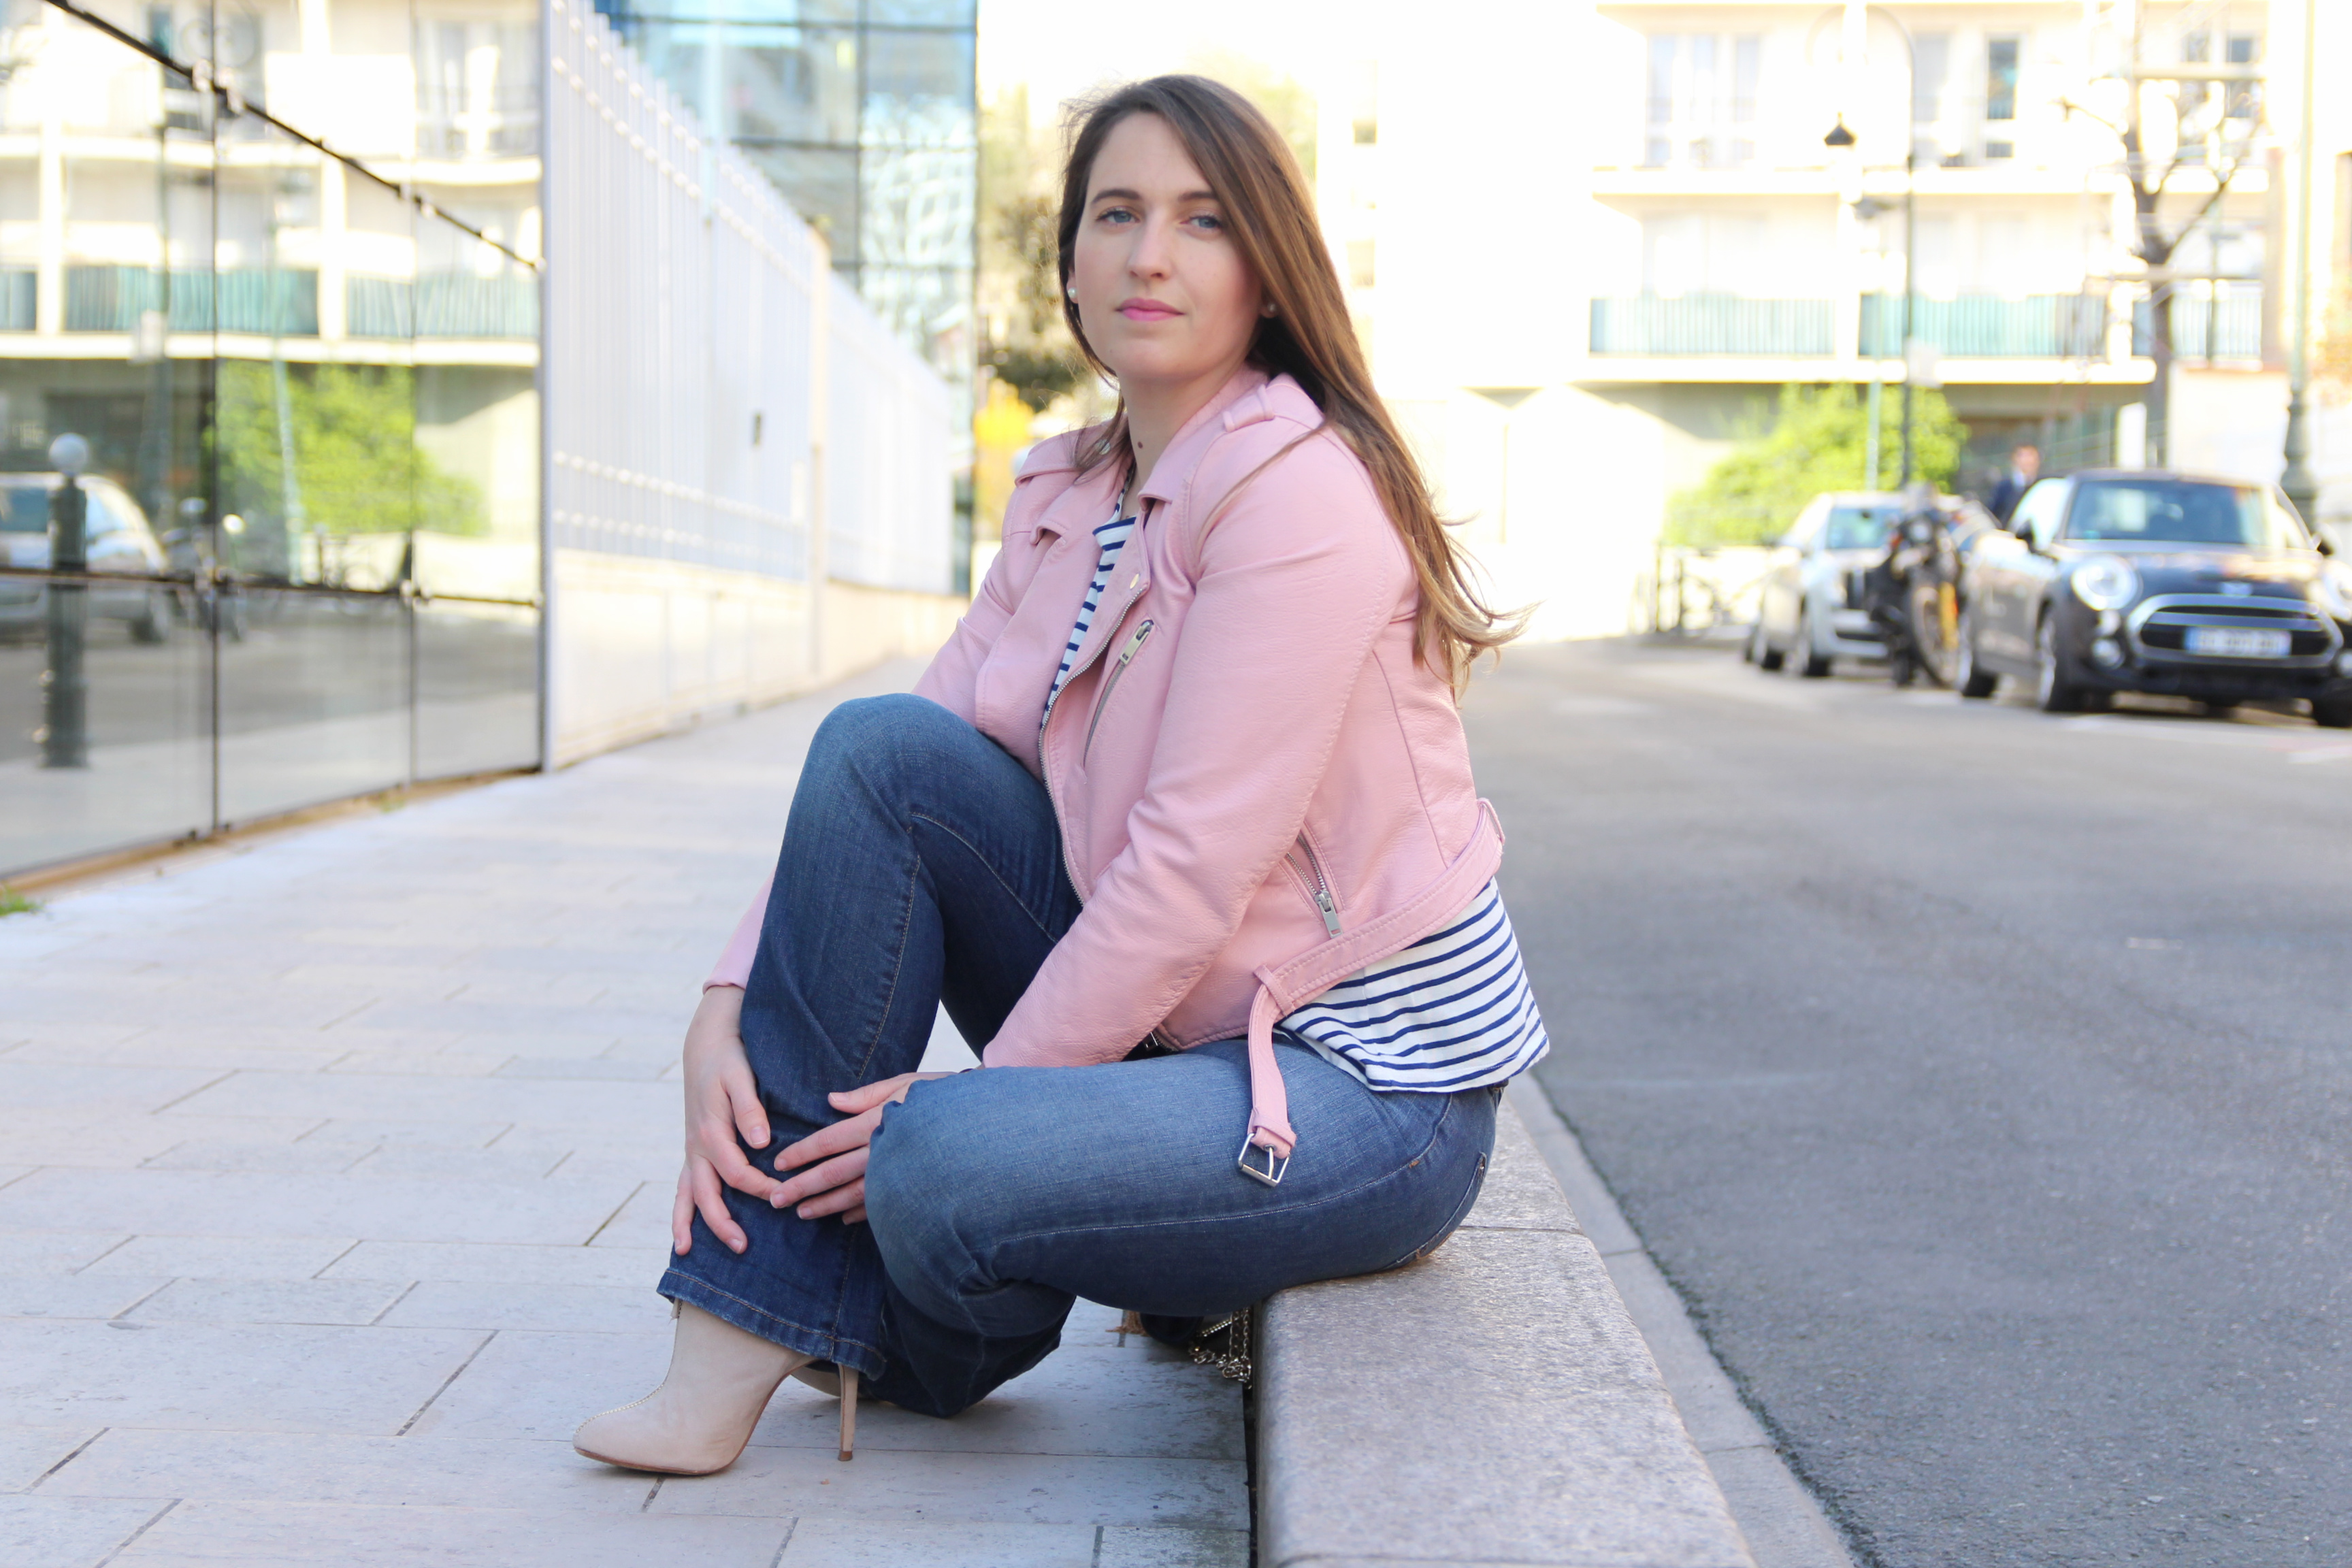 perfecto-rose-zara-marinniere-denim-influencer-fashion-ottd-look-seralynepointcom-paris-IMG_6972